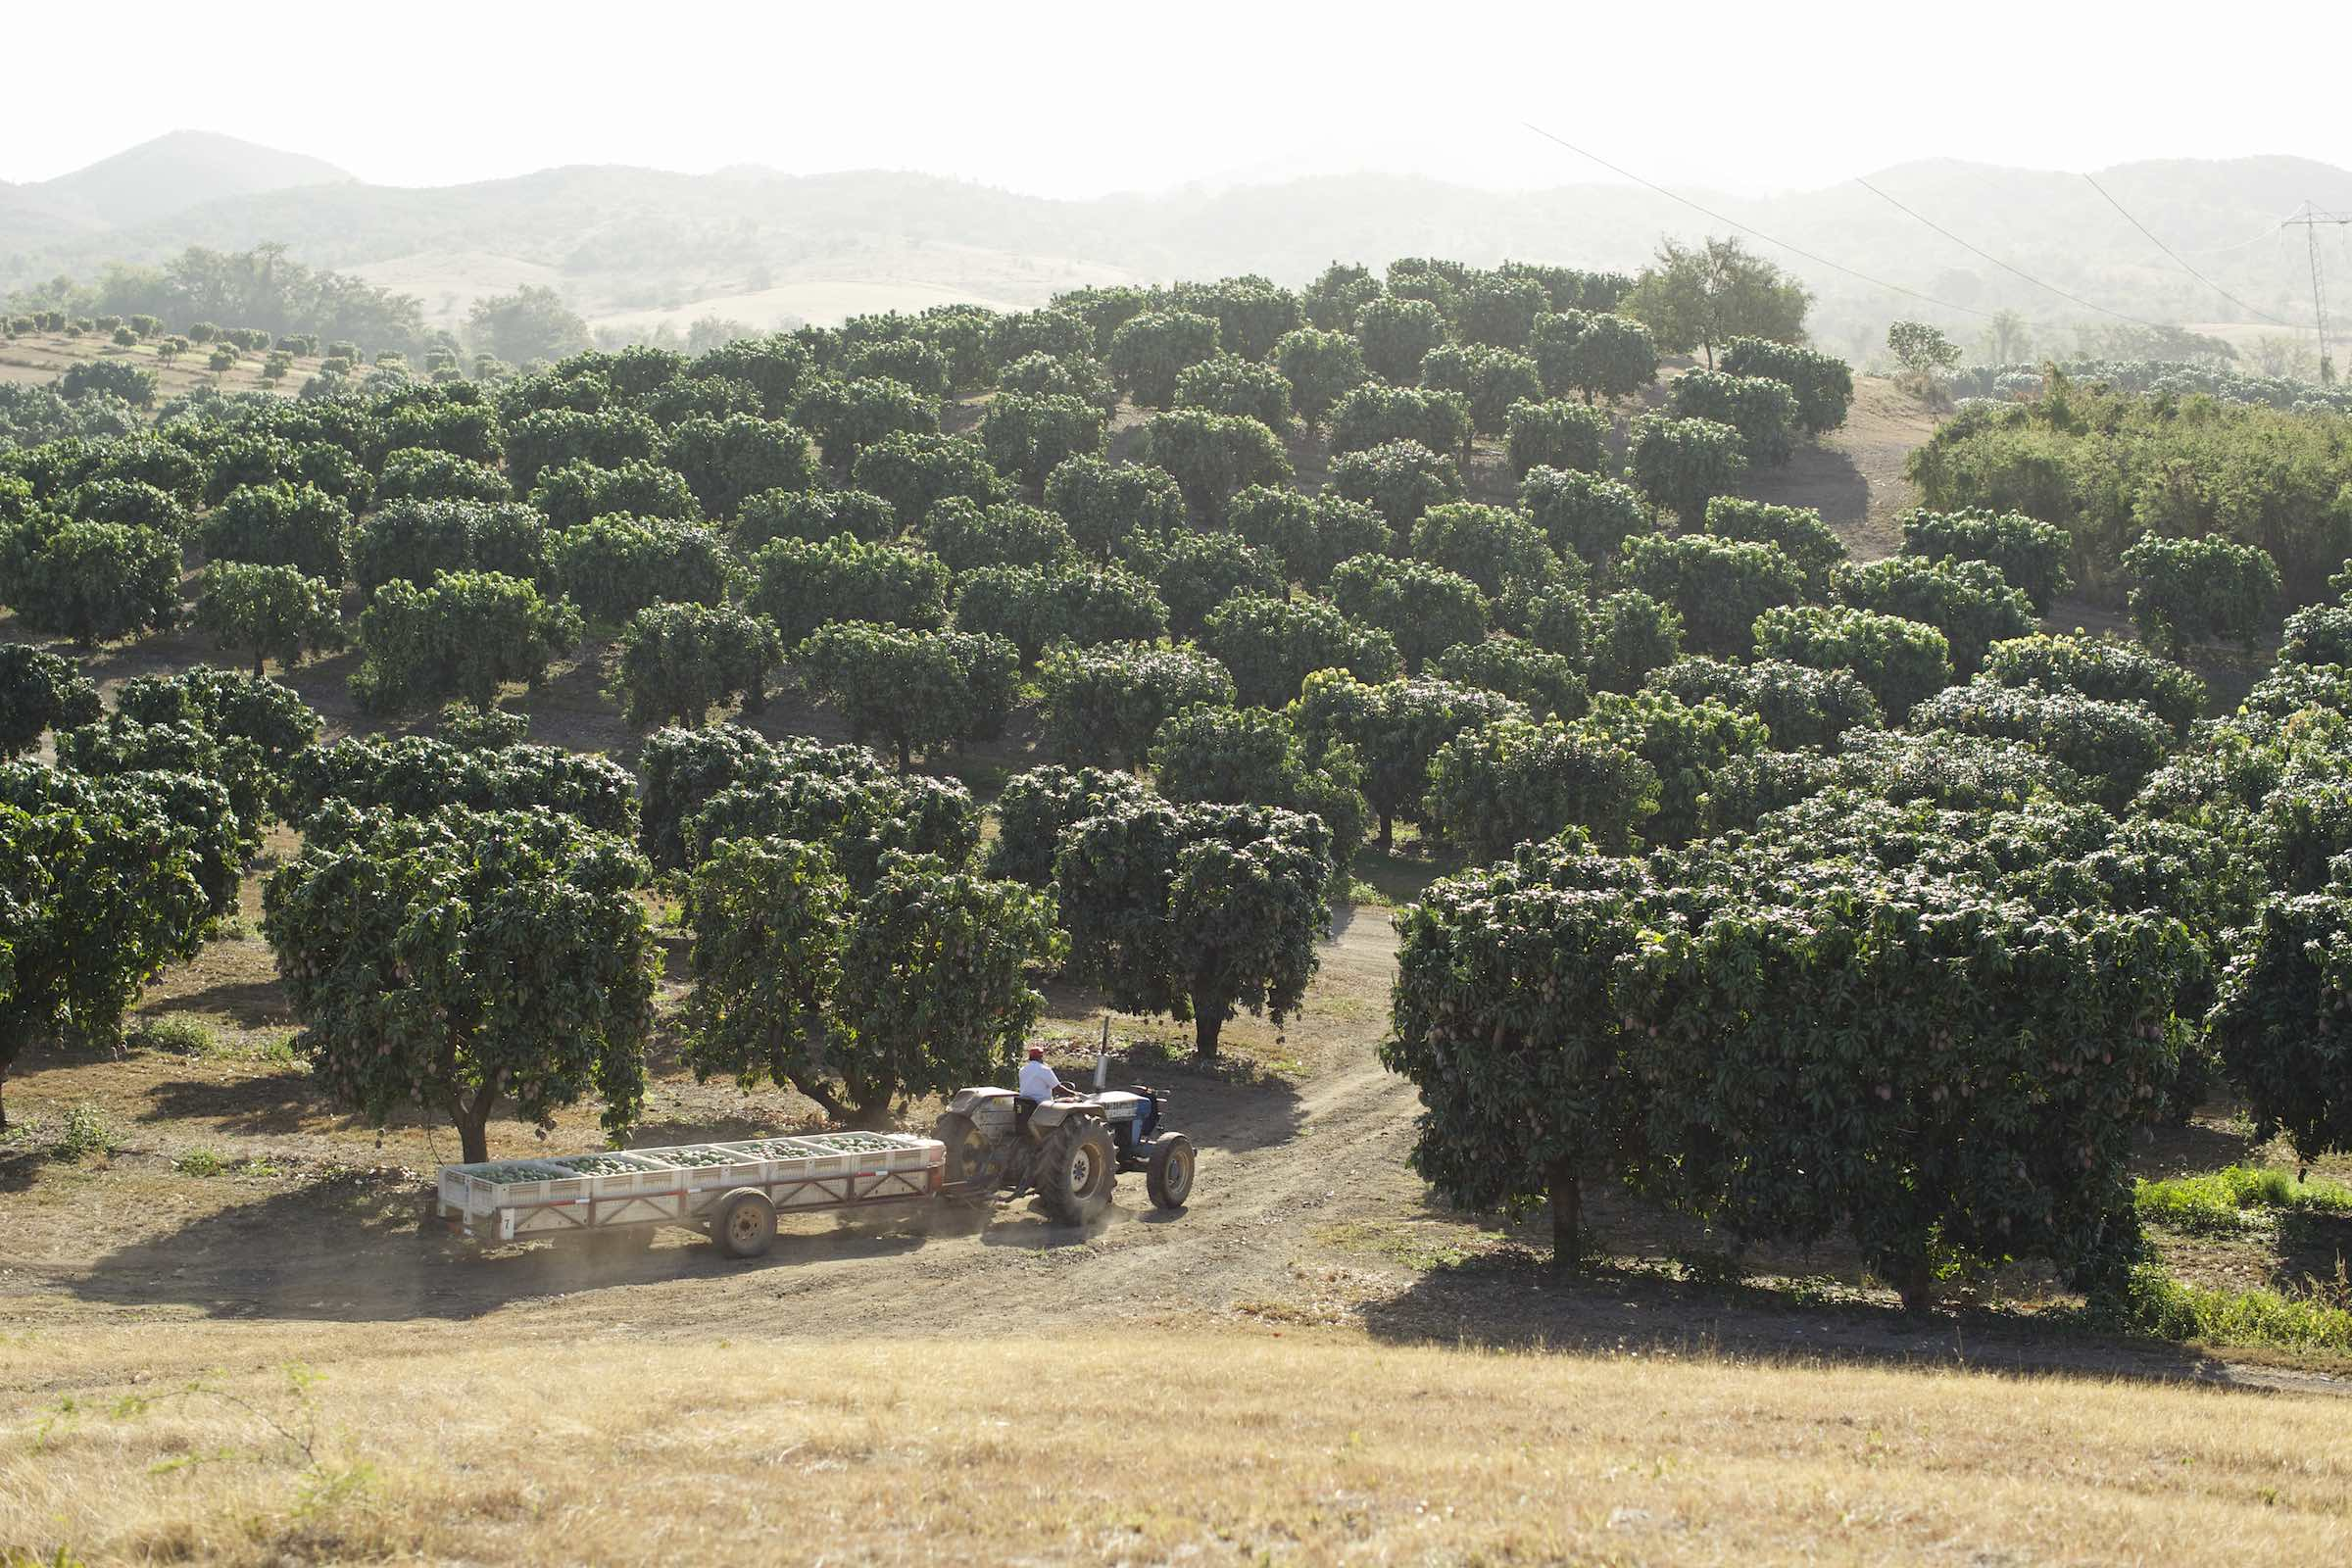 Jody Horton Photography - Tractor hauling crates of mangos, driving through a sunny orchard.